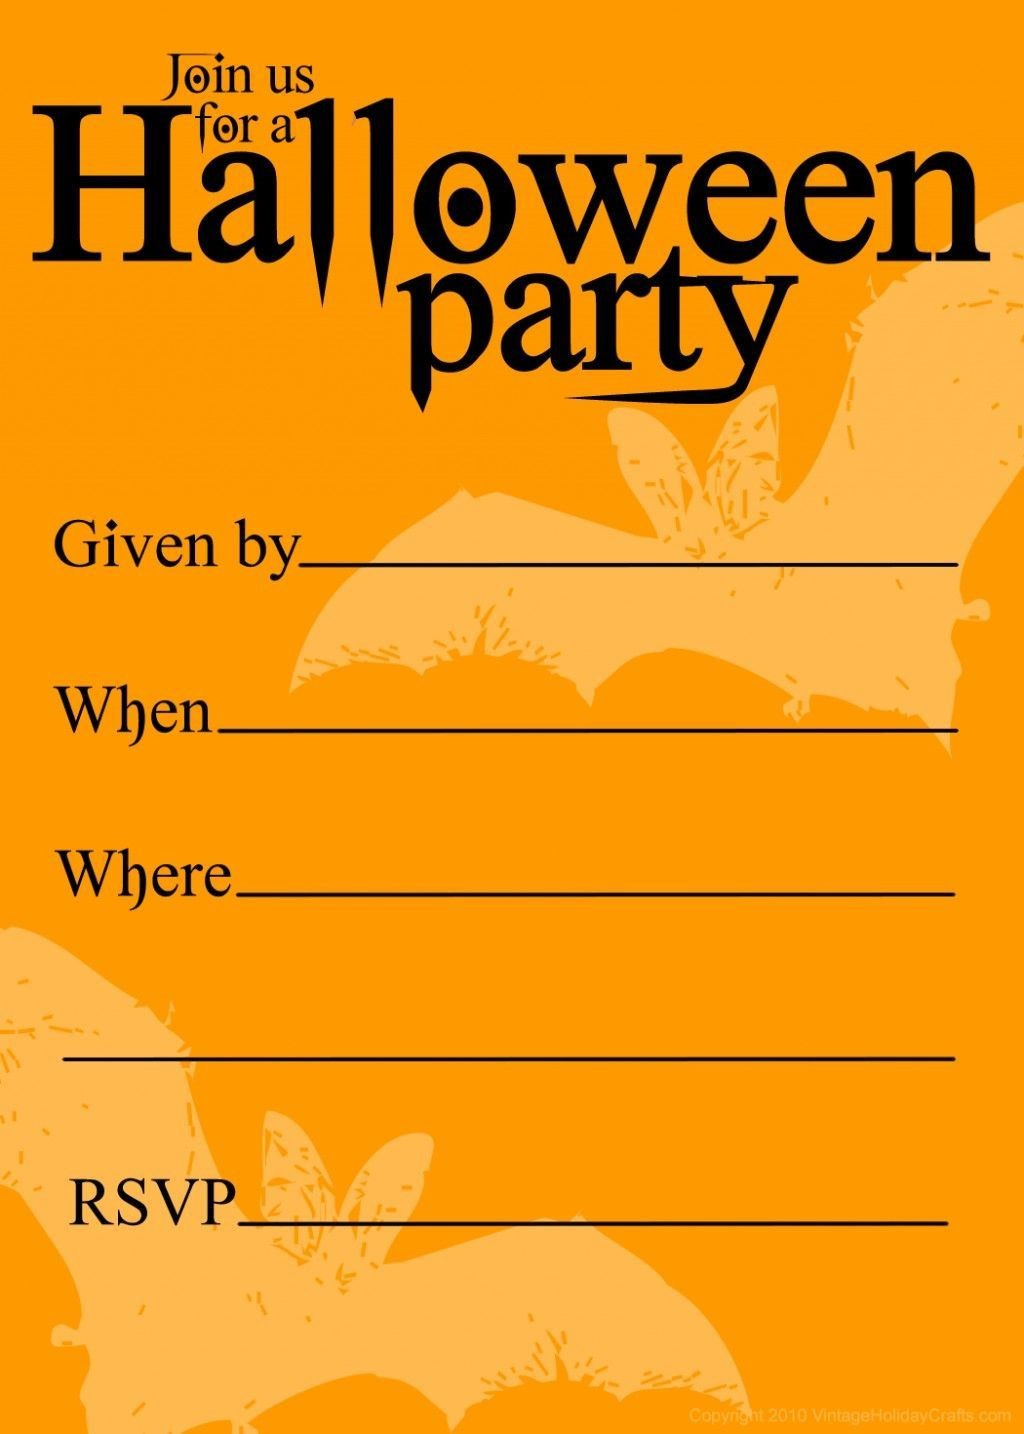 002 Fantastic Halloween Party Invite Template Concept  Templates - Free Printable Spooky Invitation BirthdayLarge